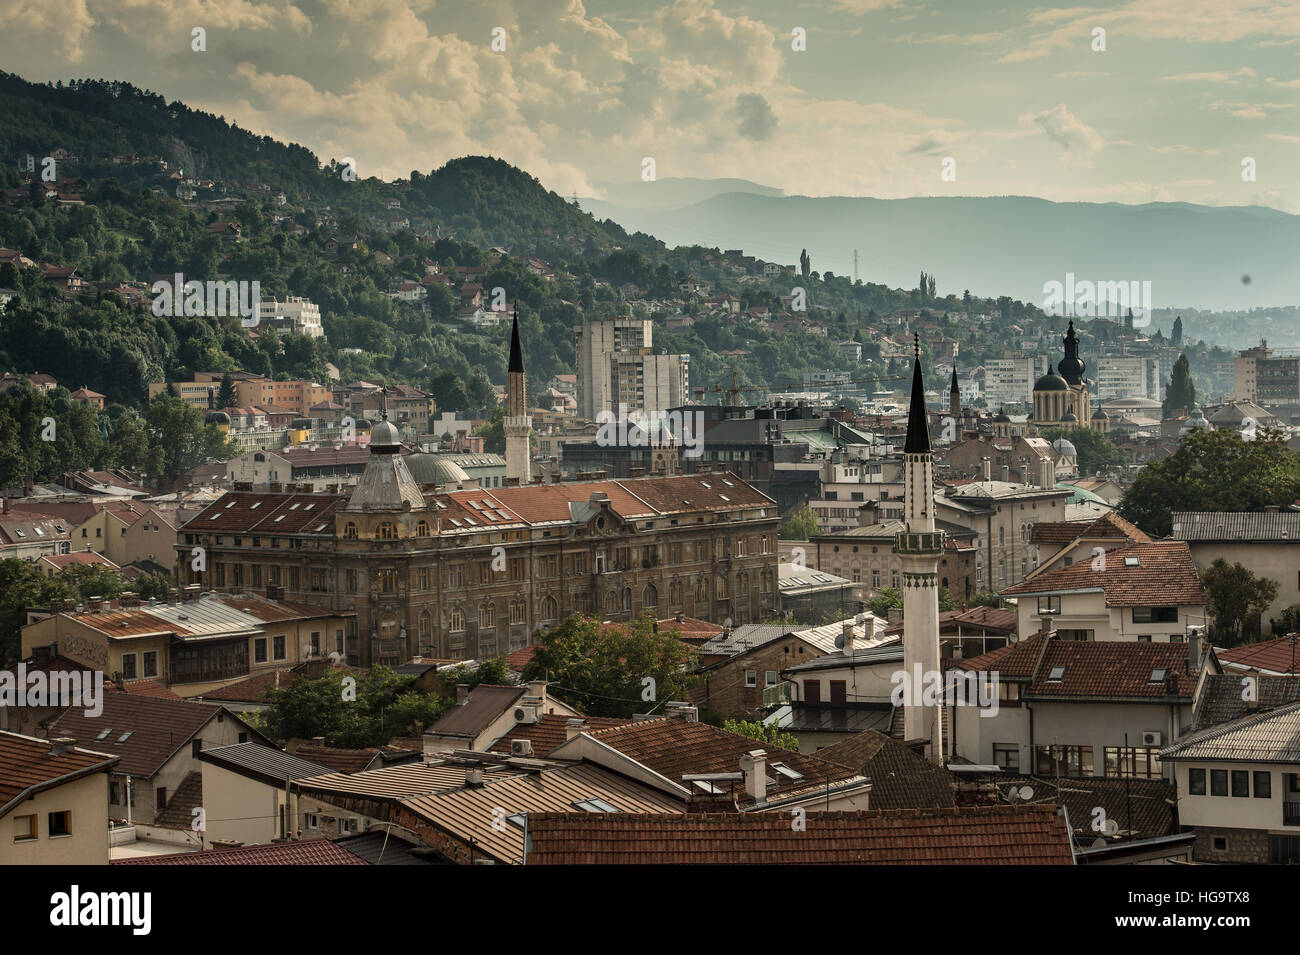 City of Sarajevo; Bosnia and Herzegovina, Balcan, Europe - Stock Image